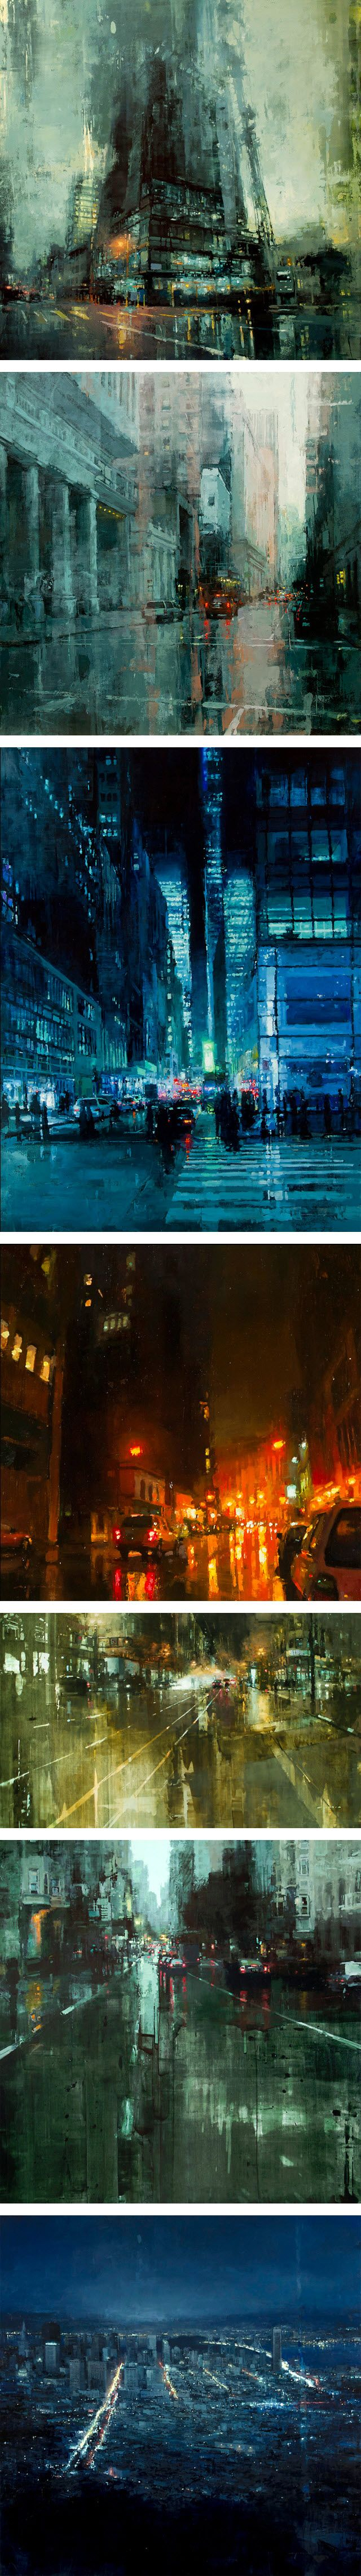 Cityscapes Painted with Oils by Jeremy Mann BTW, check out this FREE AWESOME ART APP for mobile: http://artcaffeine.imobileappsys.com/start.php?adlink=1   Get Inspired!!!